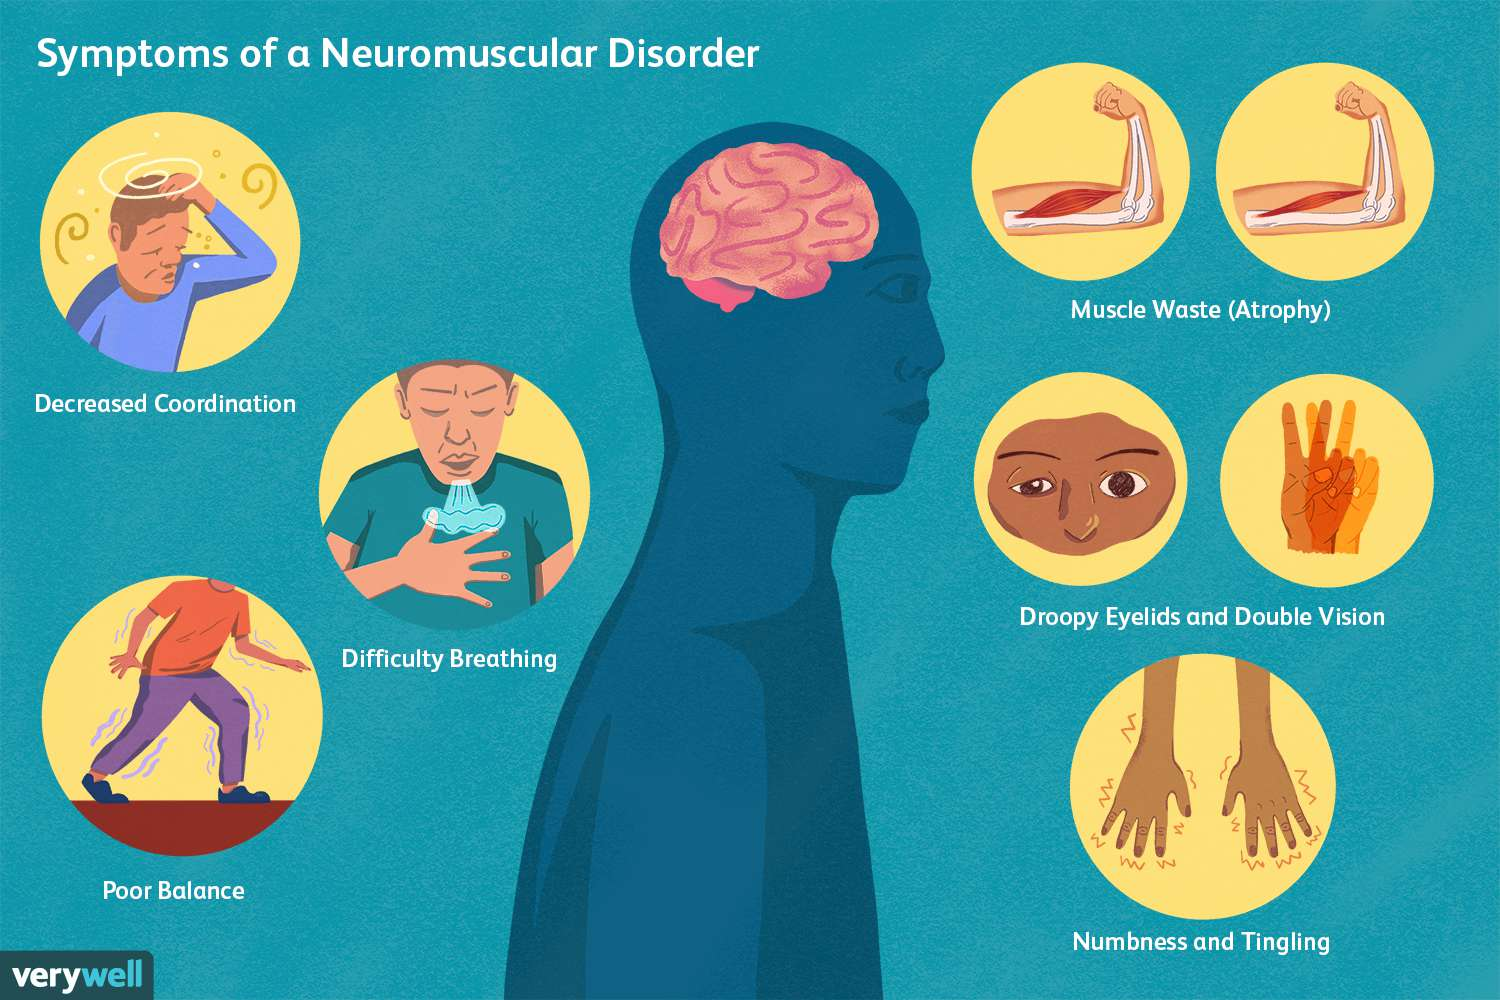 Symptoms of a Neuromuscular Disorder